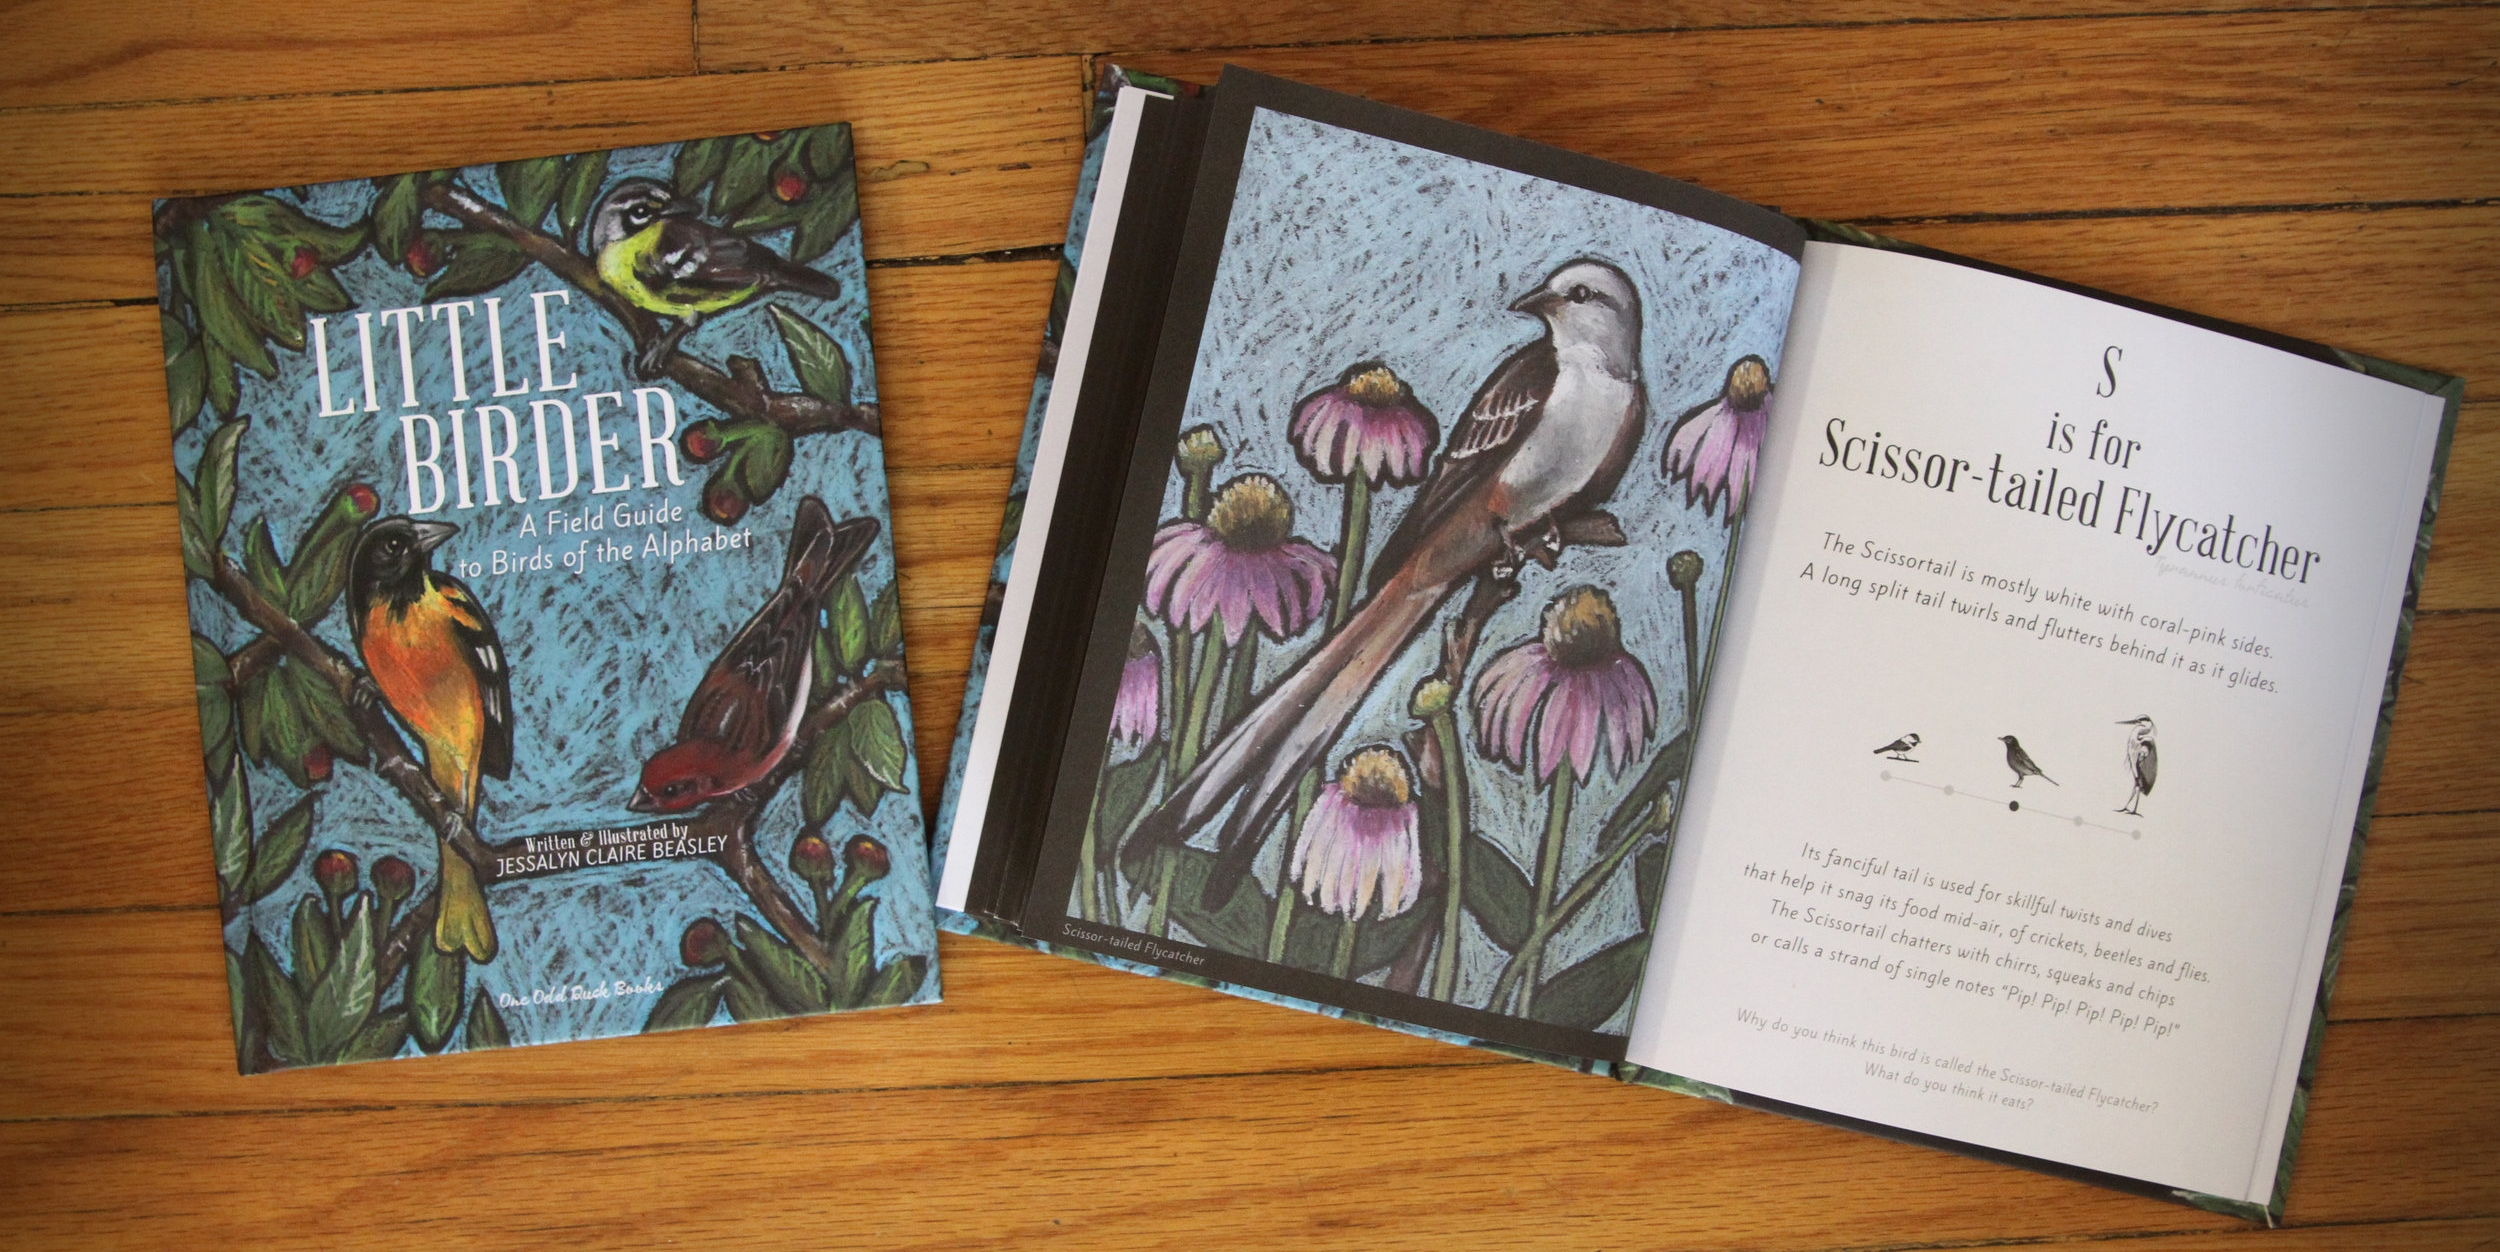 Little Birder Children's book